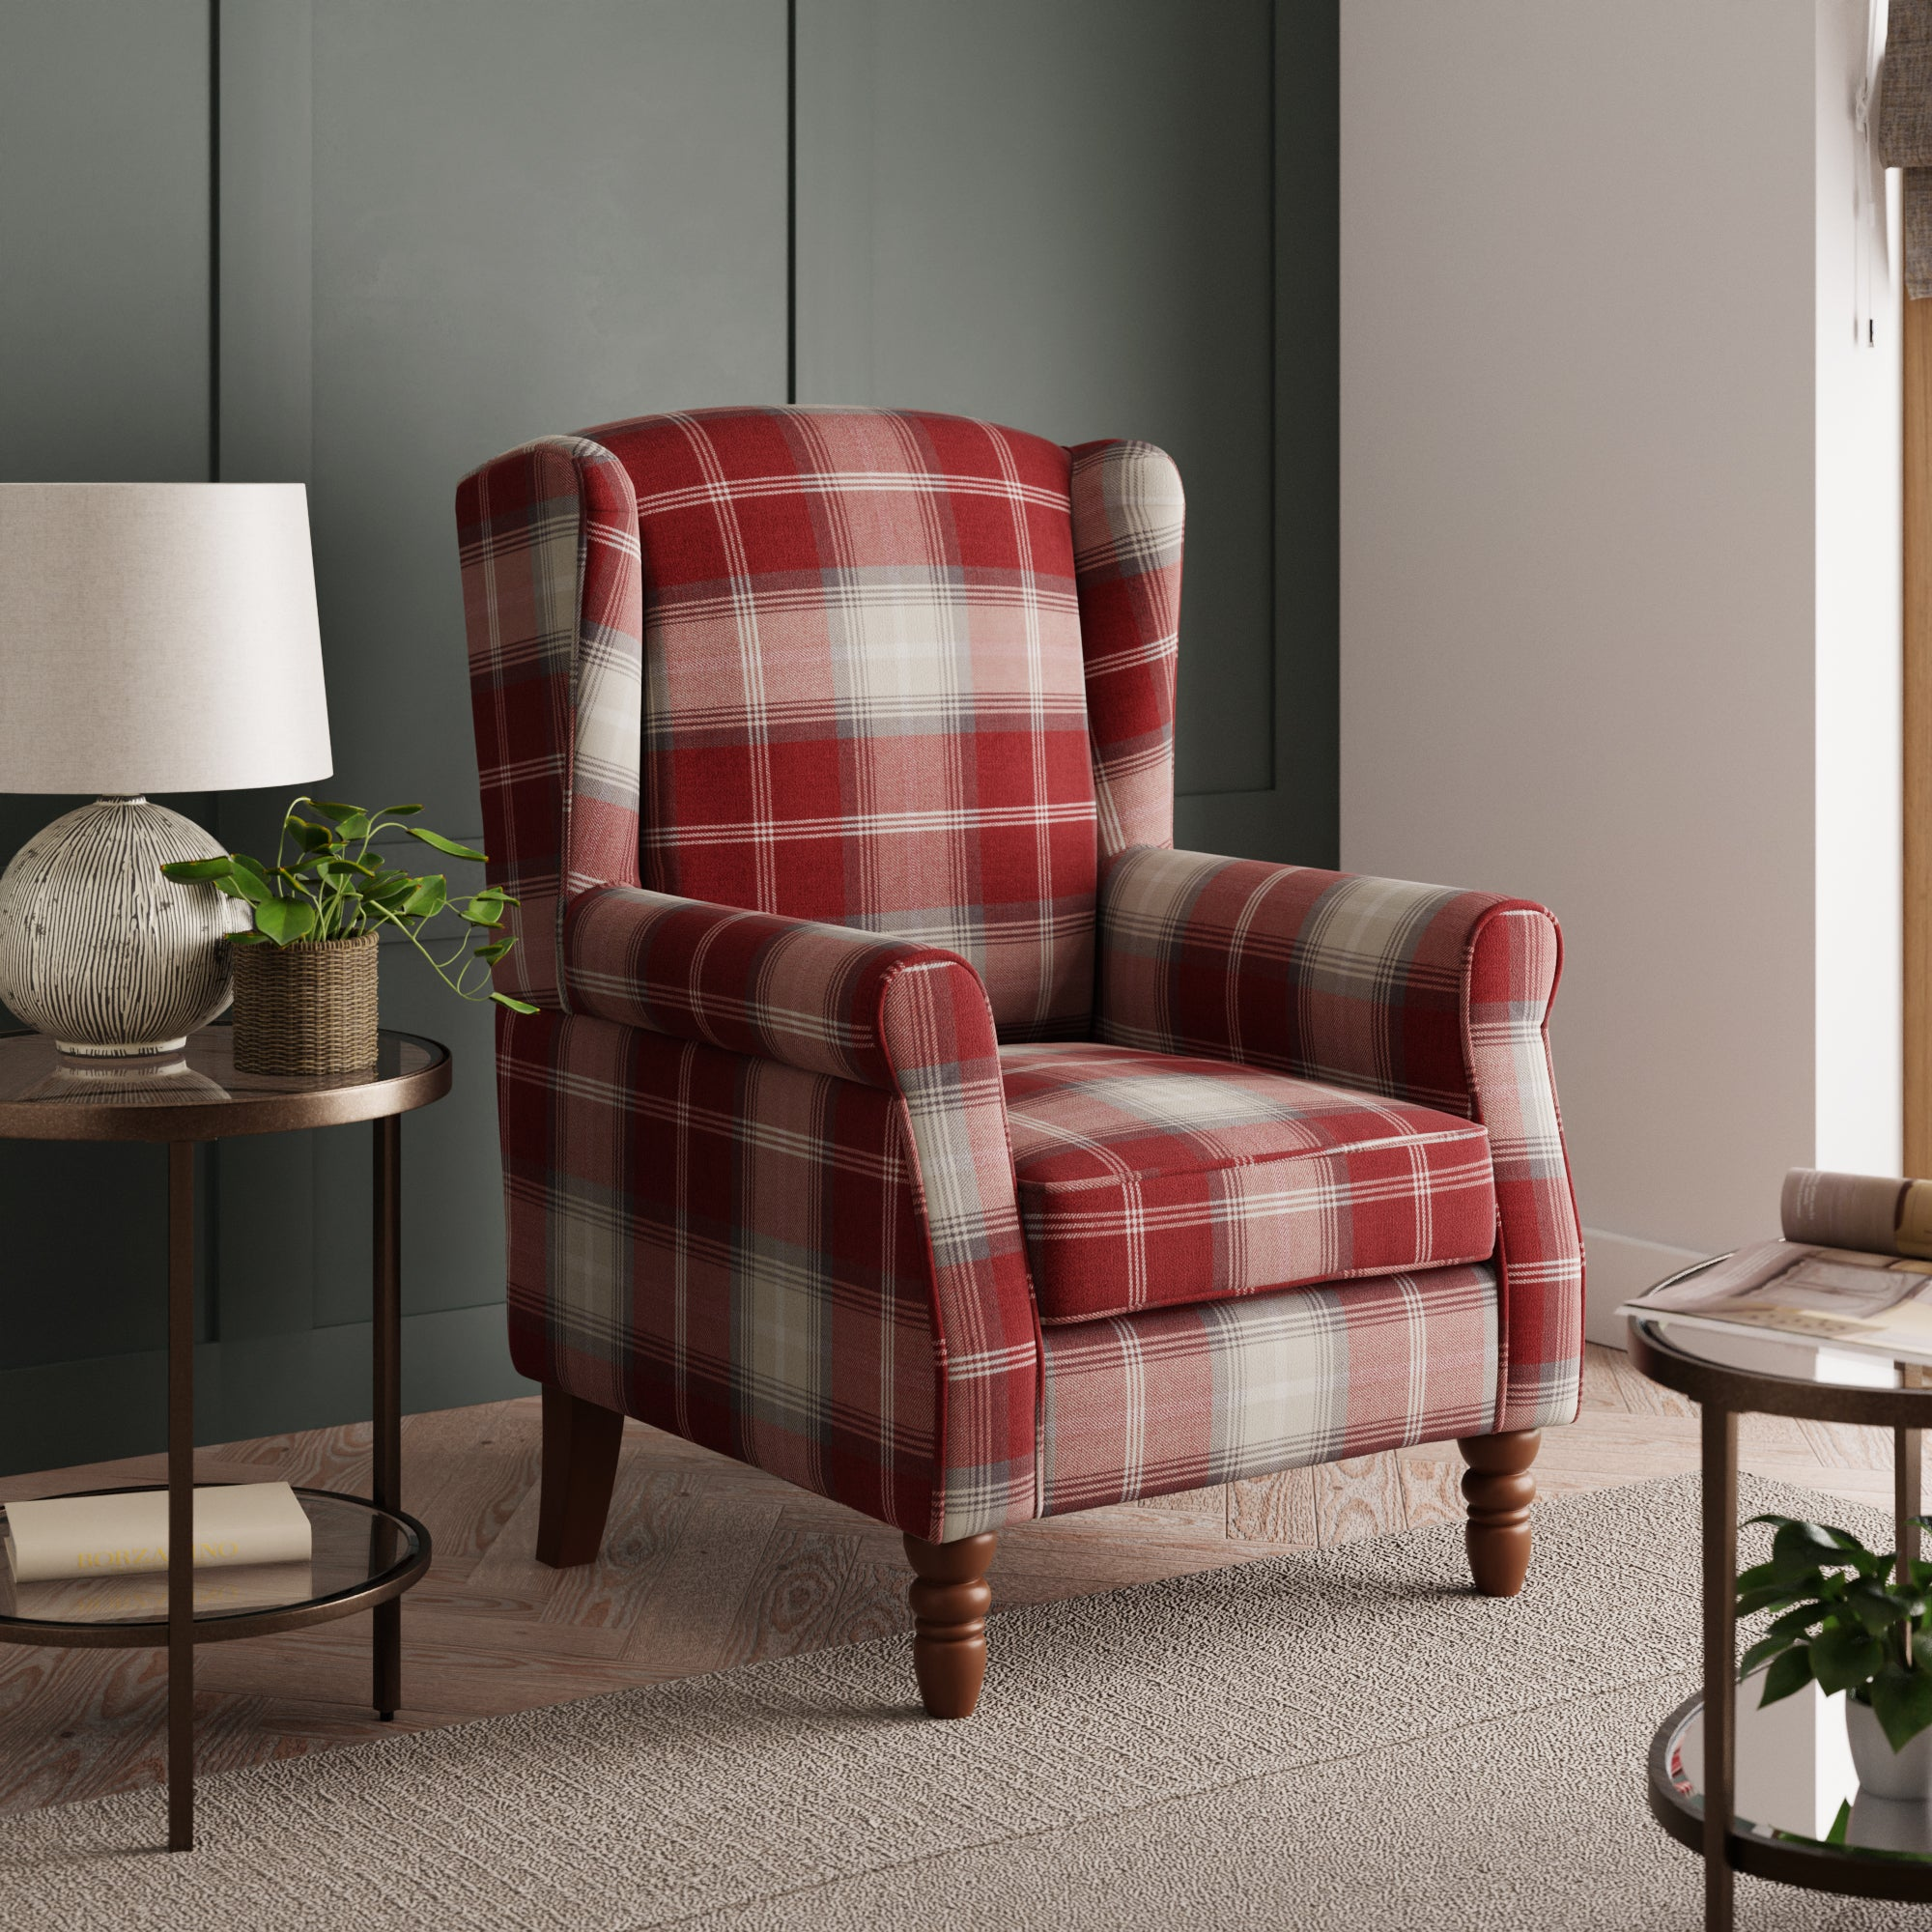 Oswald Check Wingback Armchair - Red Red/White